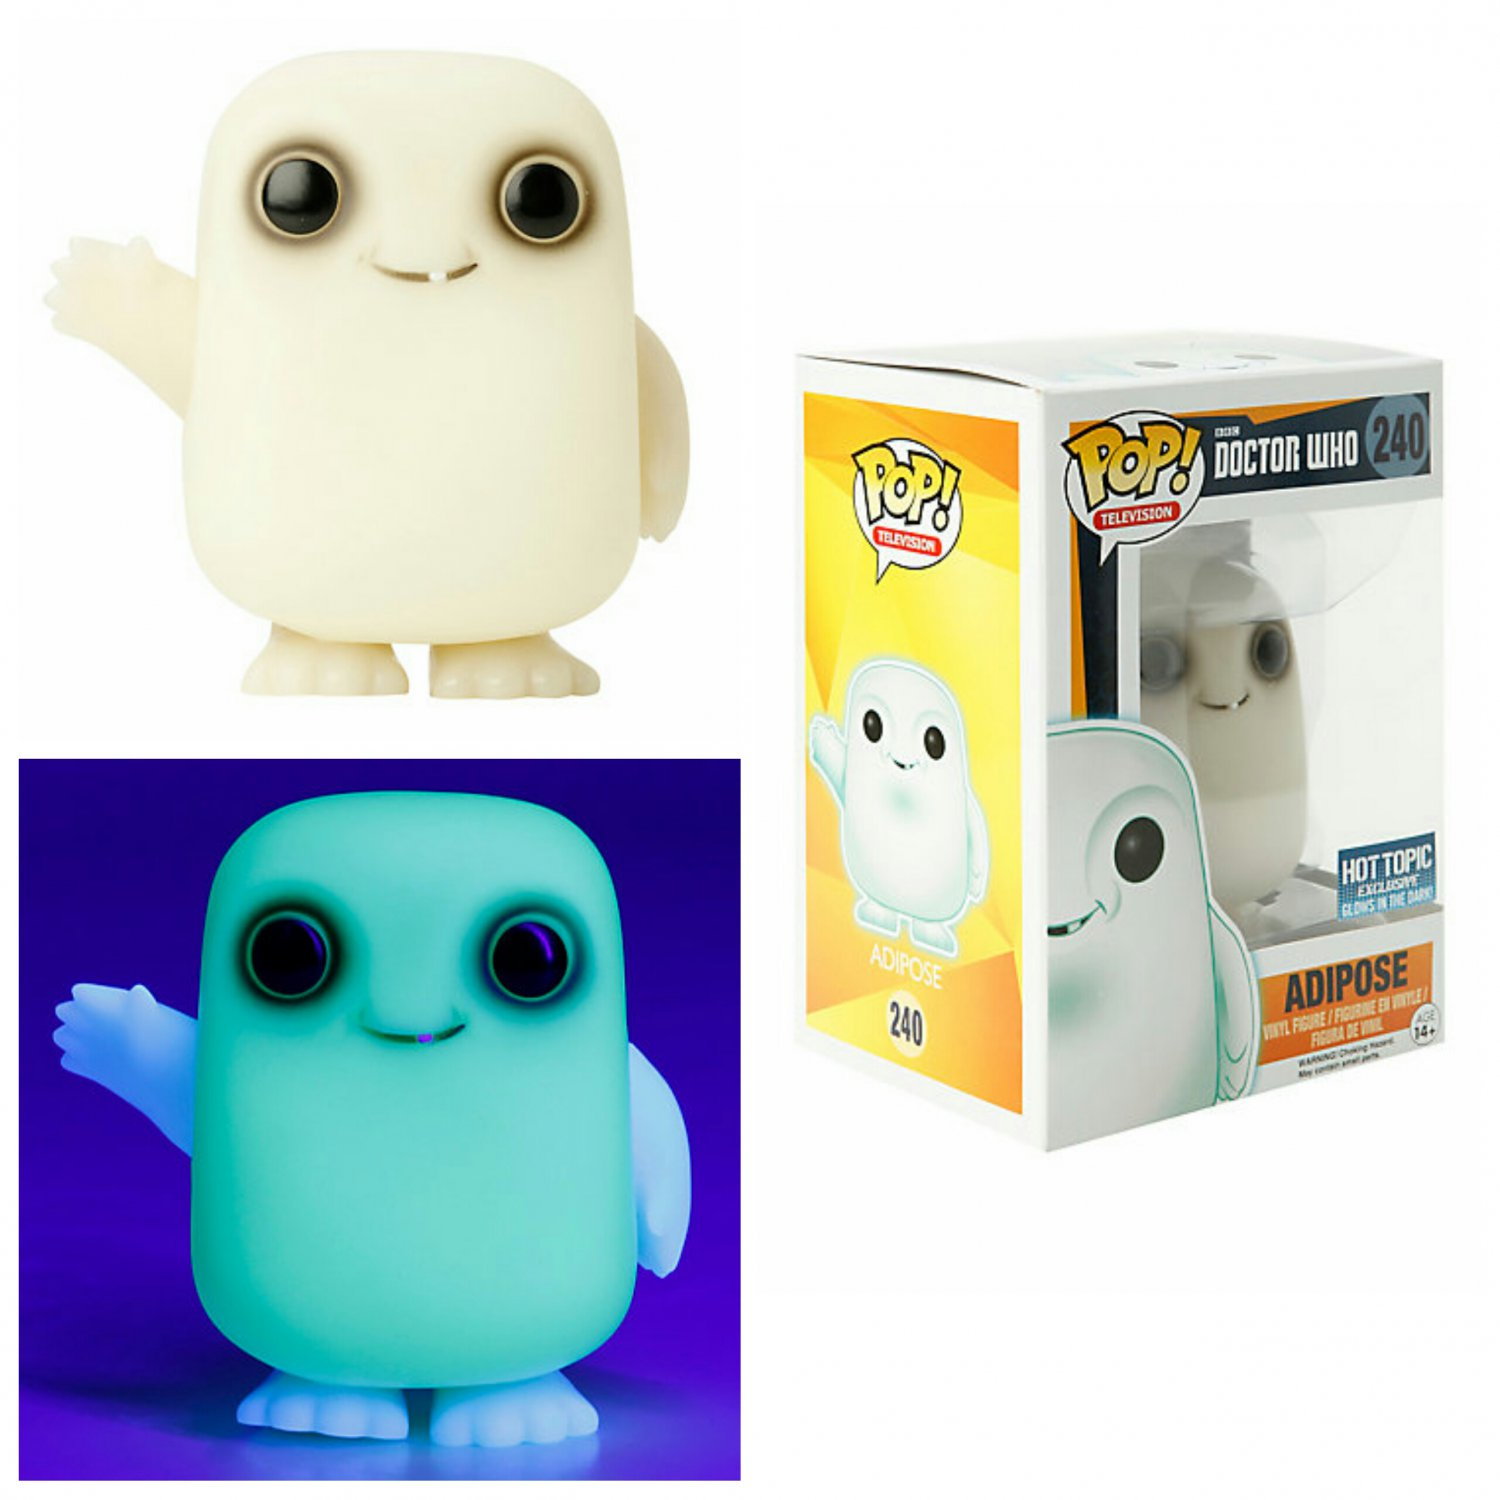 FUNKO Doctor Who POP! #240 Television Adipose Glow-In-The-Dark Vinyl Figure Hot Topic Exclusive